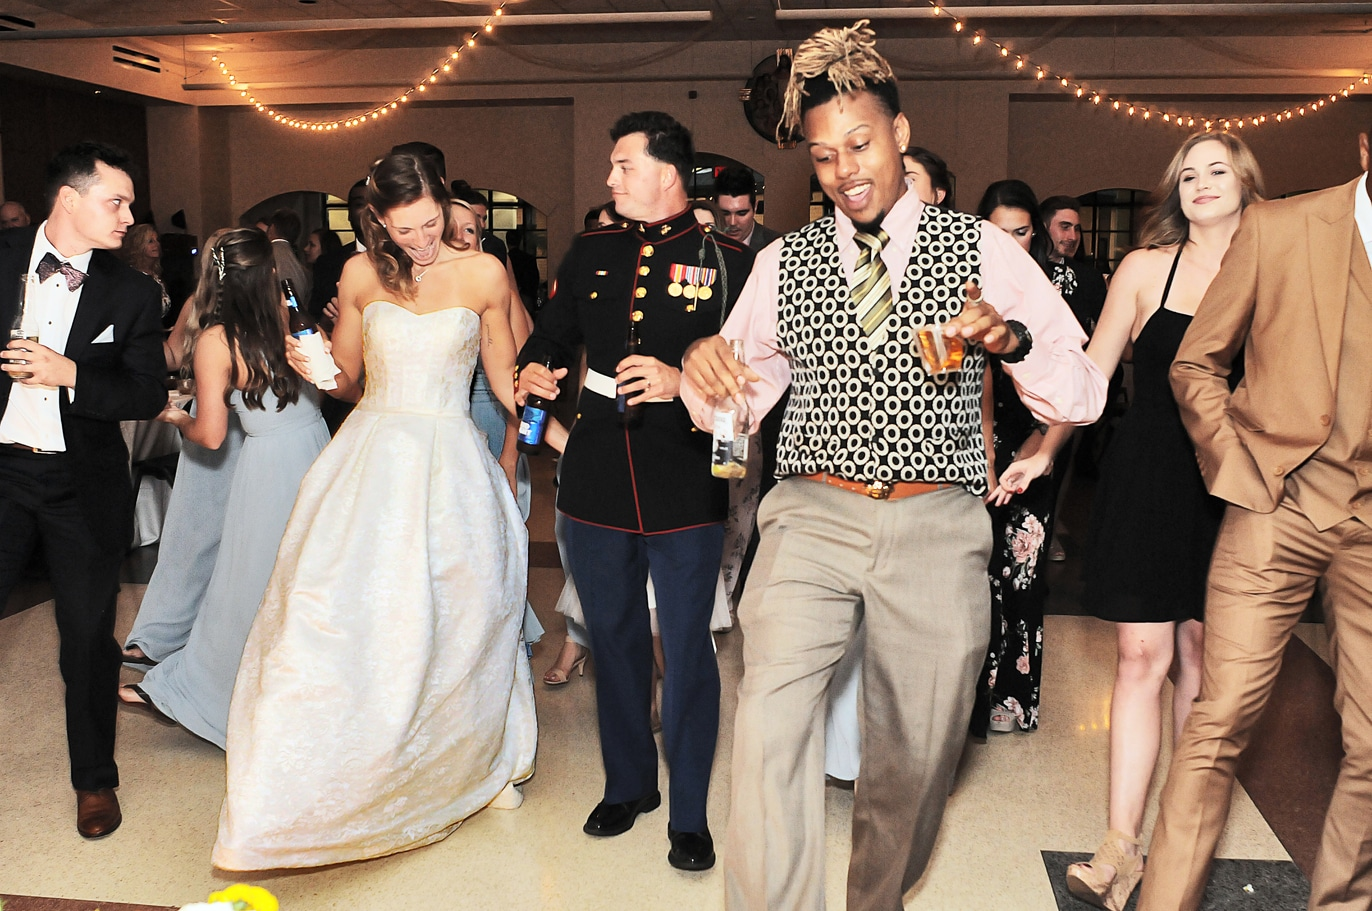 Blue Blazers Entertainment - bride and groom with wedding guests doing line dance